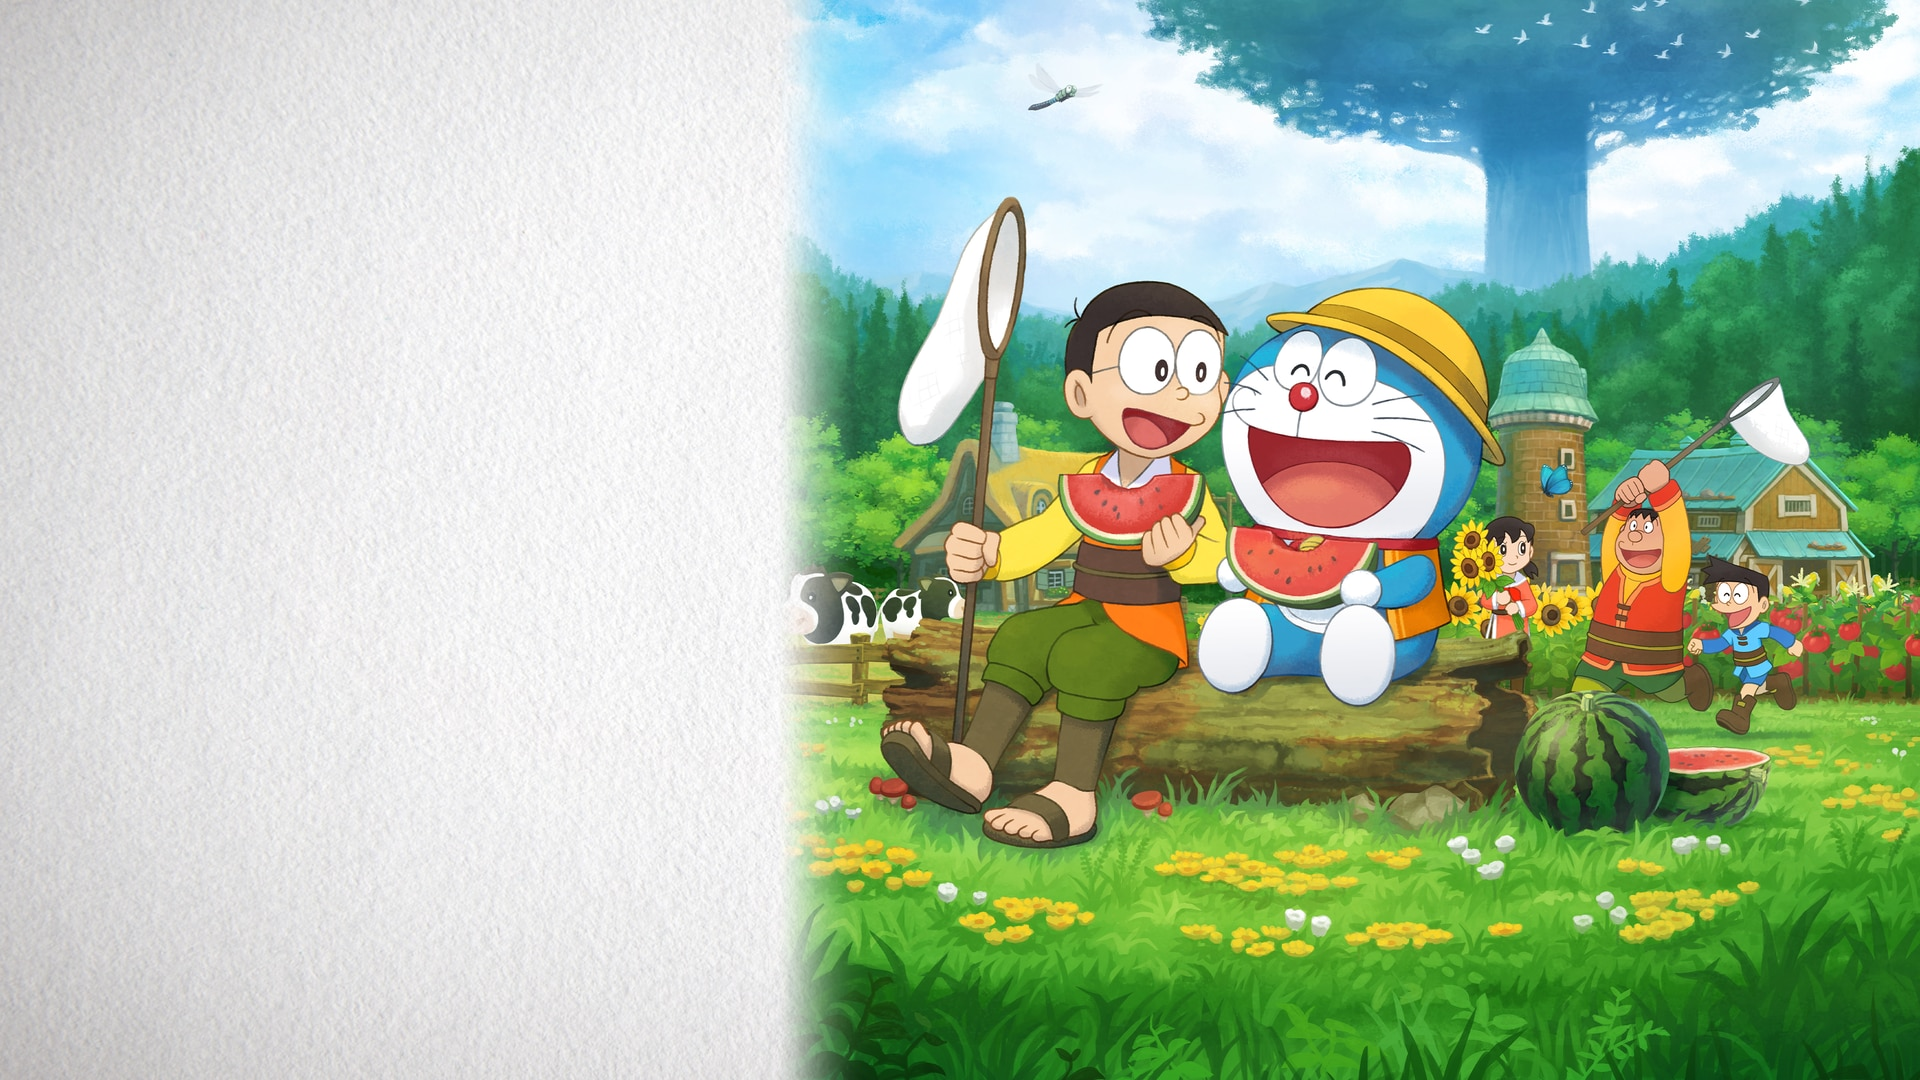 DORAEMON Story of Seasons(incl. Thai) (Simplified Chinese, Korean, Thai, Traditional Chinese)